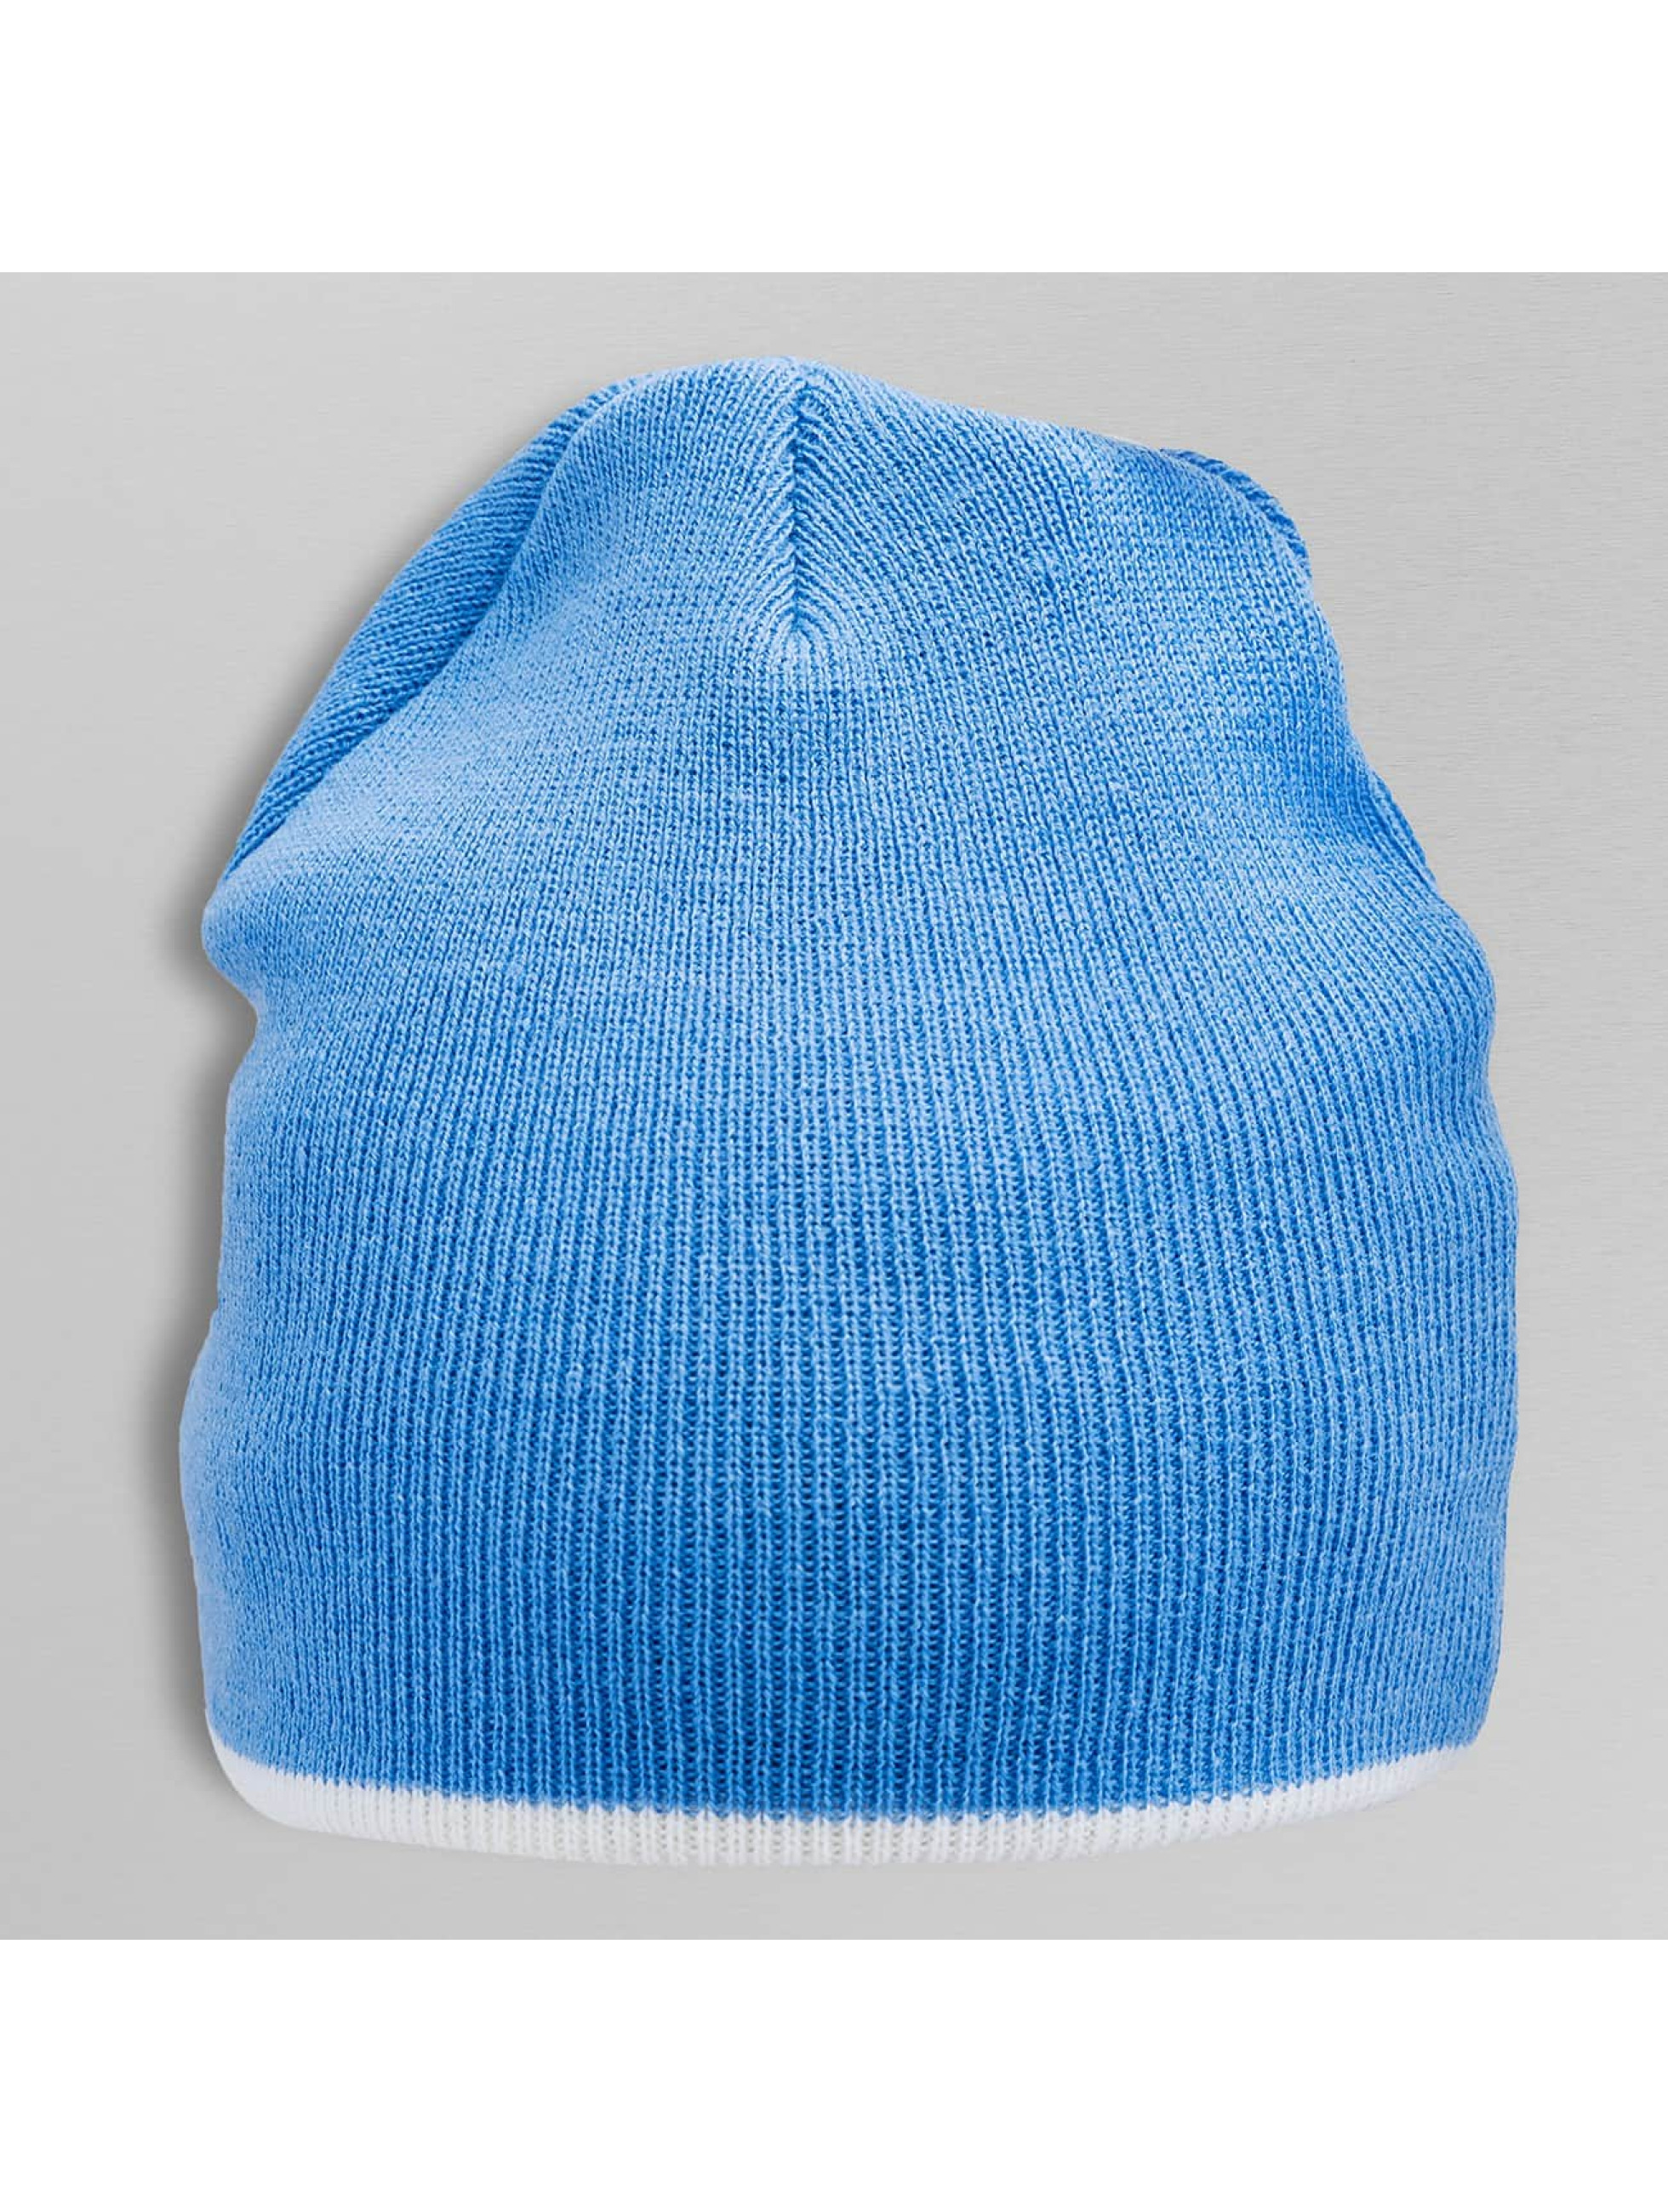 Cap Crony Bonnet Single Striped bleu